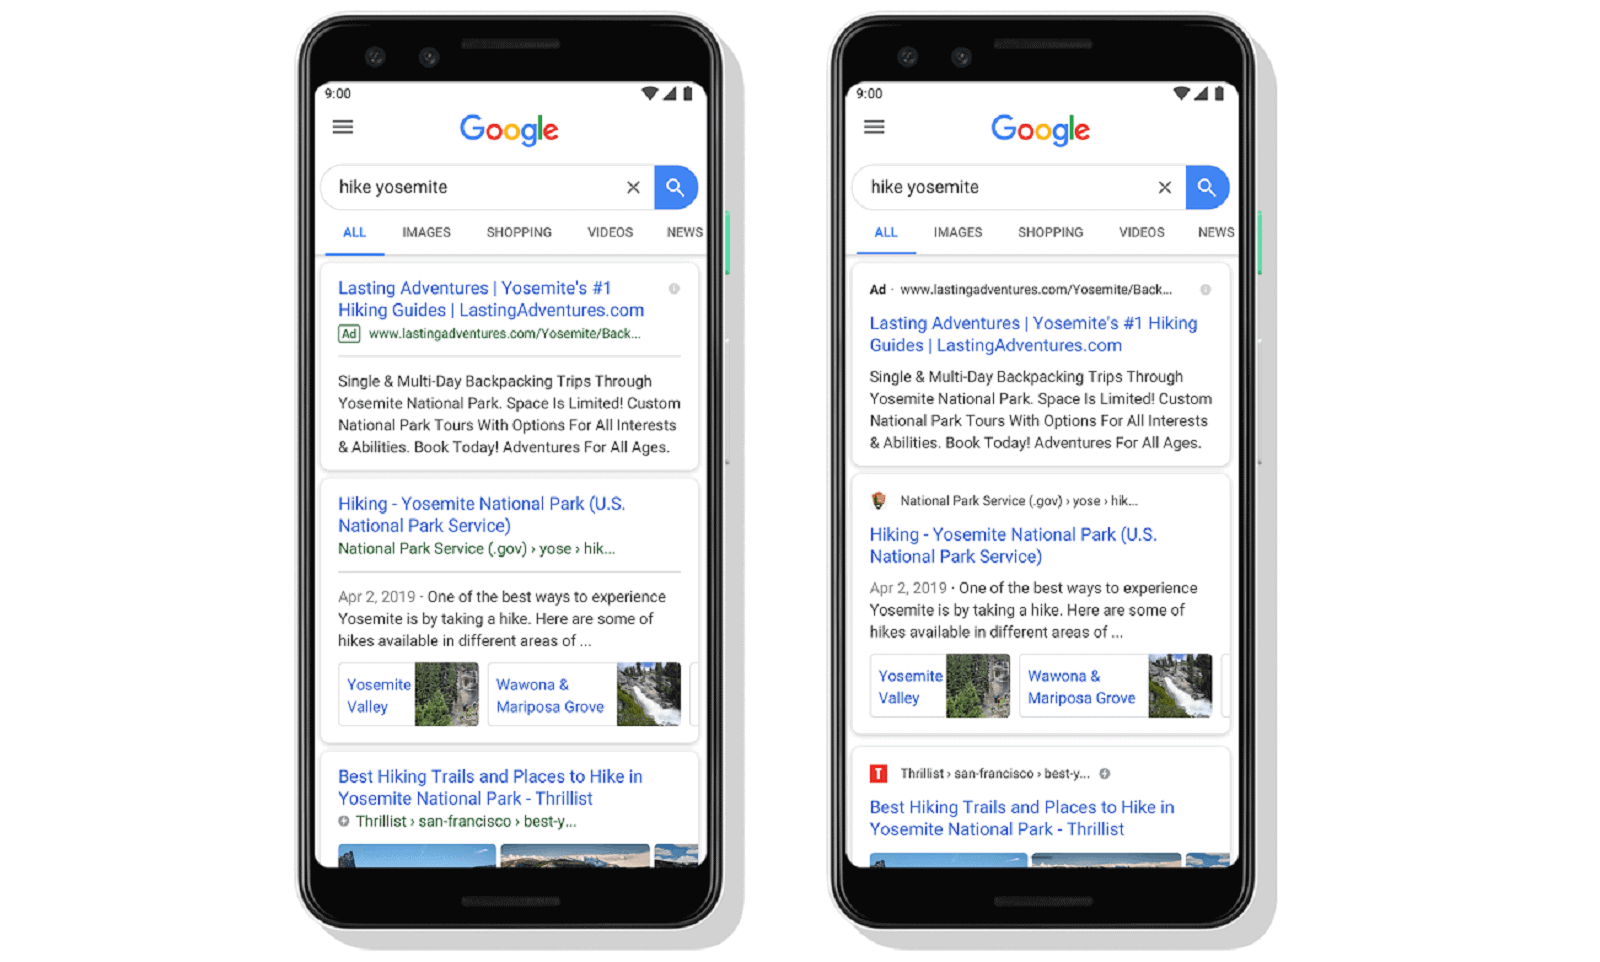 Google Search Redesign May 2019